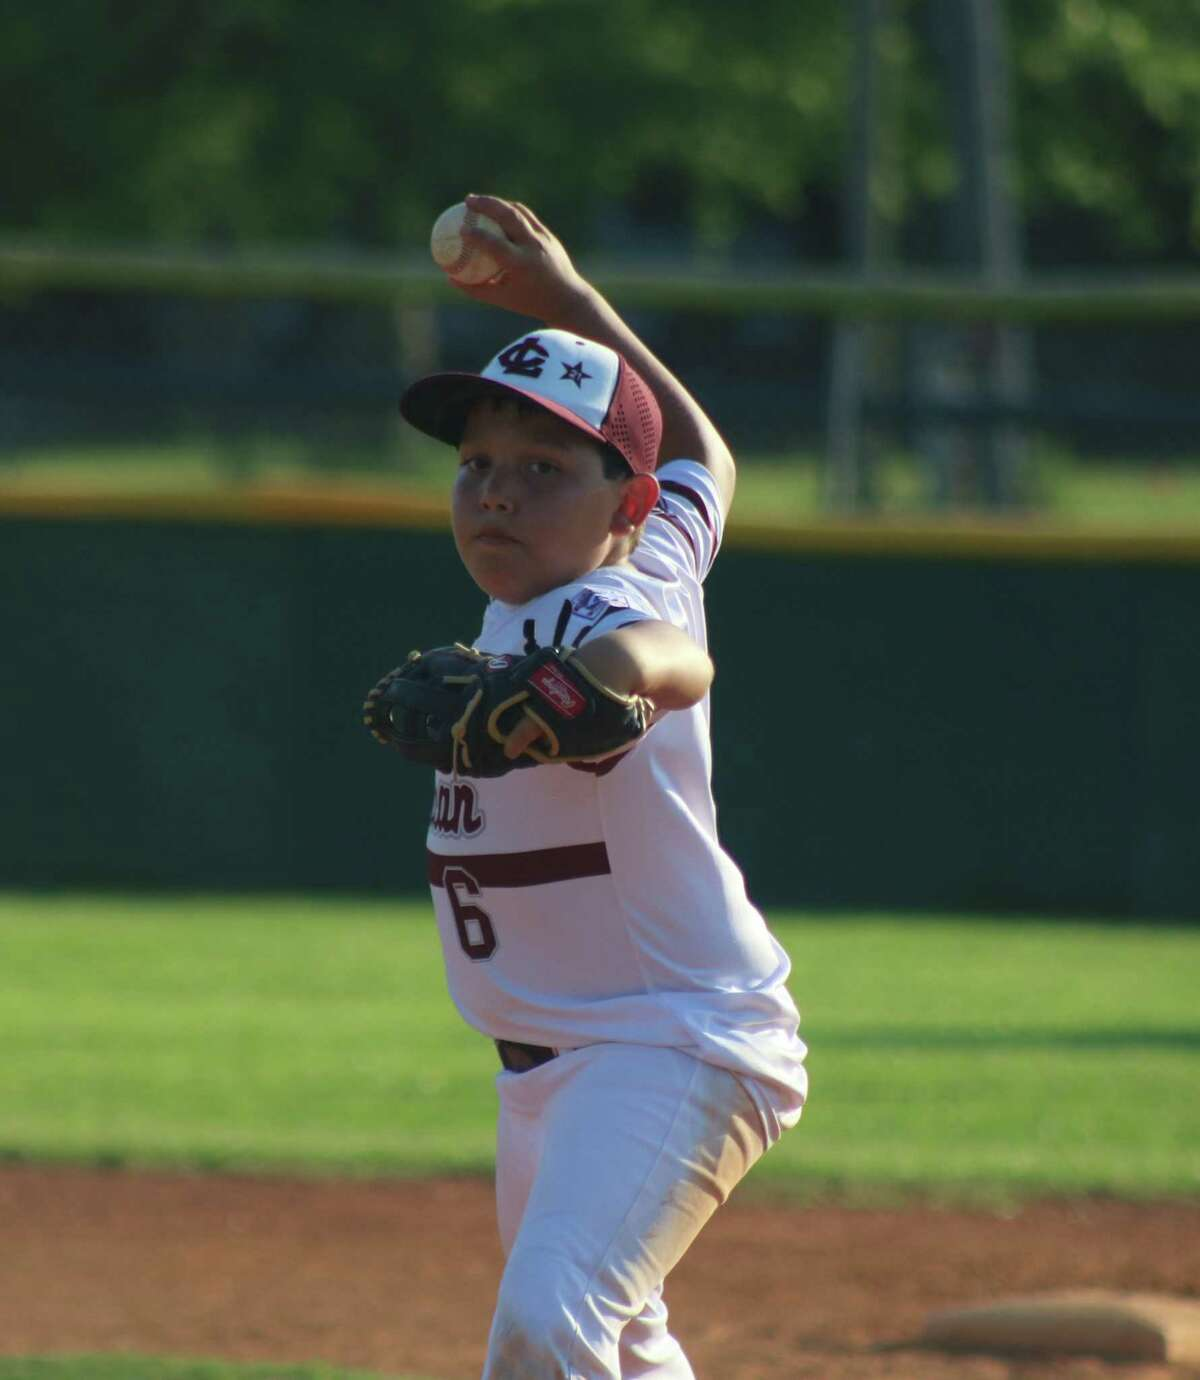 League City American 10s pitcher Andrew Gonzalez concentrates on a batter during Thursday night's District 14 contest in Santa Fe.